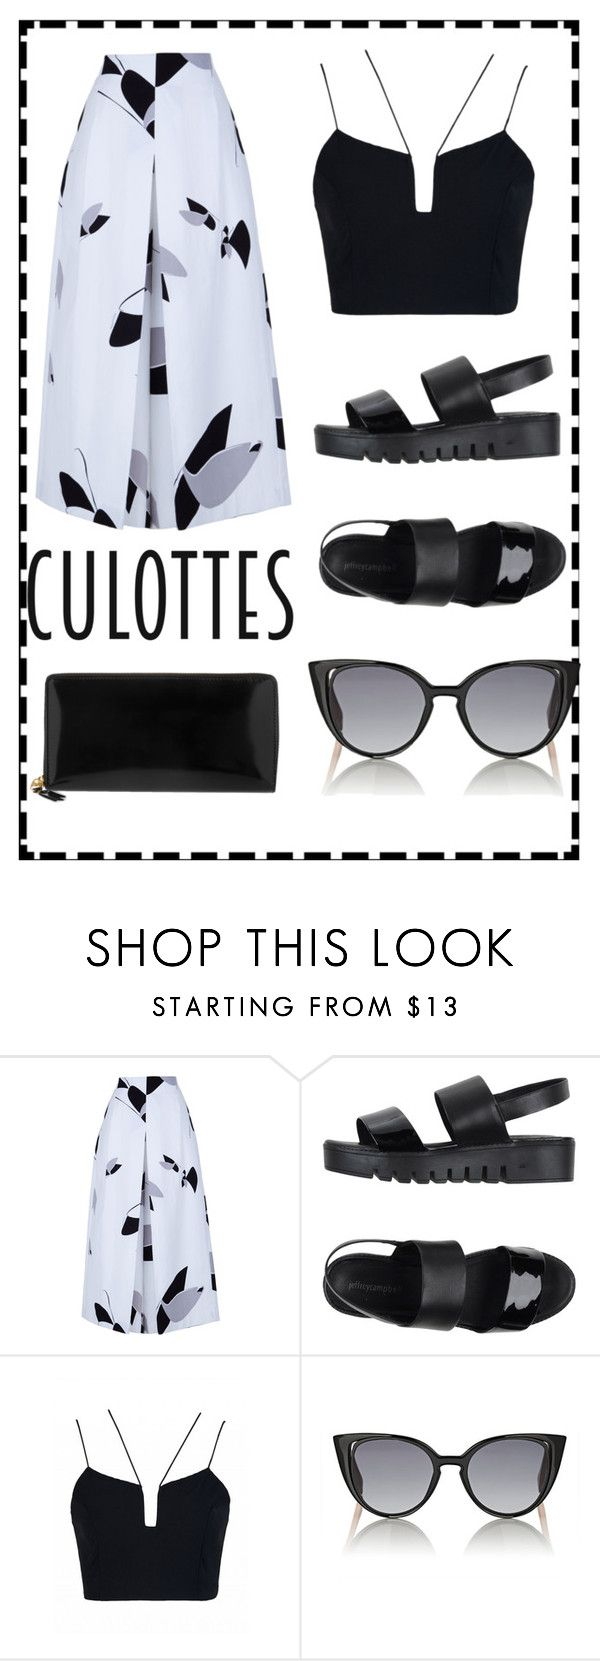 """""""Culottes"""" by caroline-mauery ❤ liked on Polyvore featuring TIBI, Jeffrey Campbell, Fendi, Comme des Garçons, TrickyTrend and culottes"""